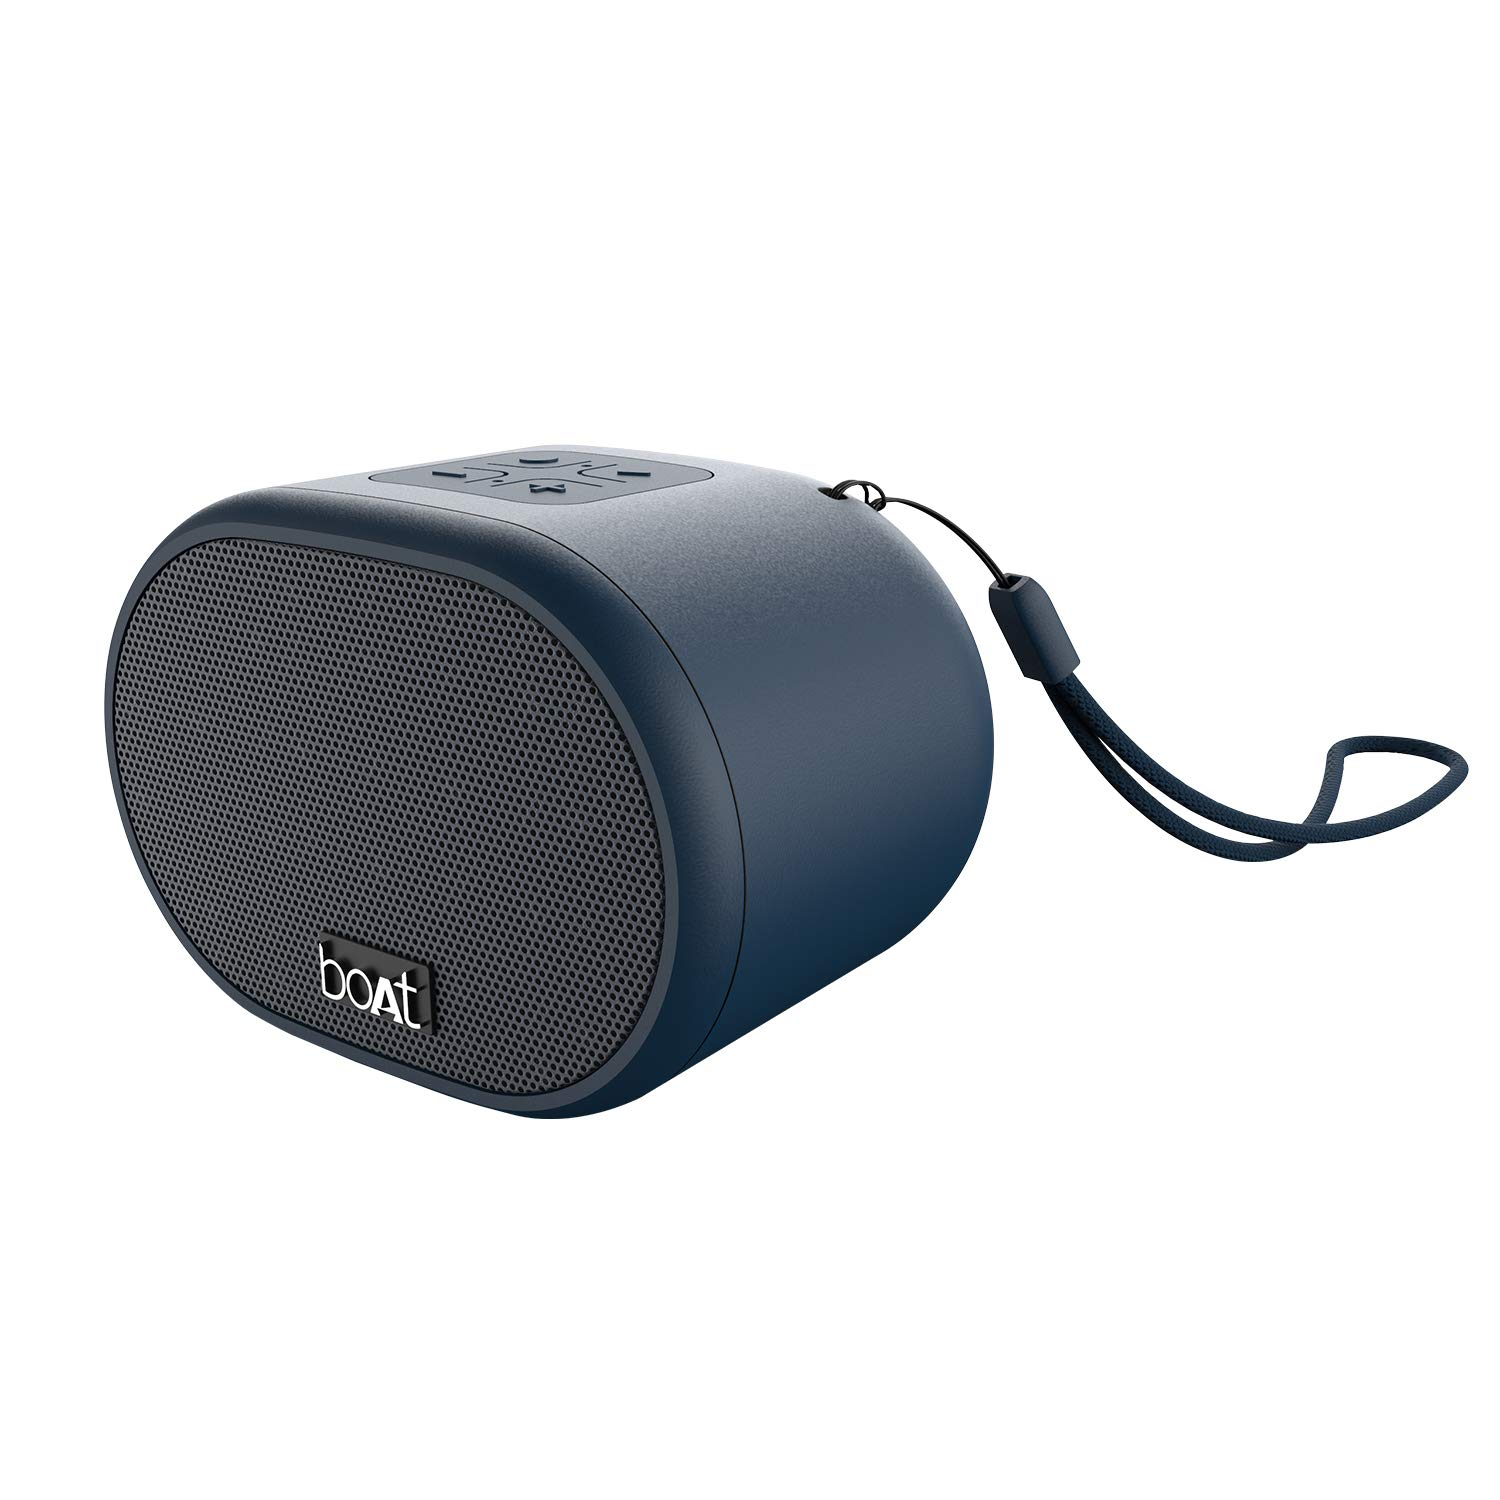 Boat Stone 149 Portable Wireless Speaker